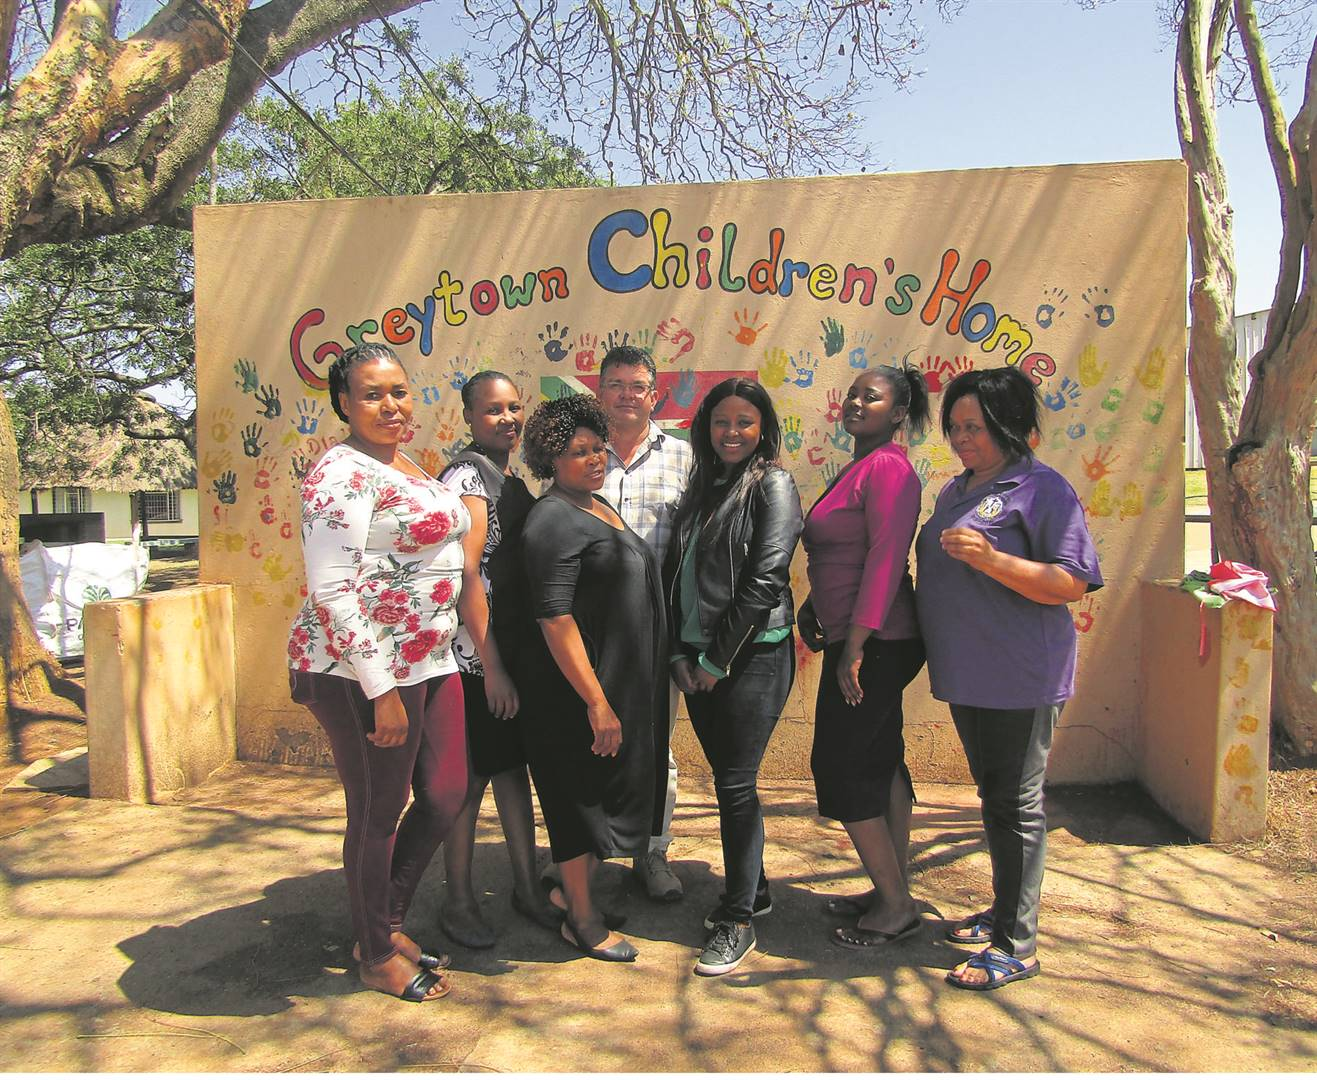 PHOTOS: andile sithole Manager of the centre Pieter Swanepoel (back, third from left) with the staff as they celebrate 100 years since the centre was established.